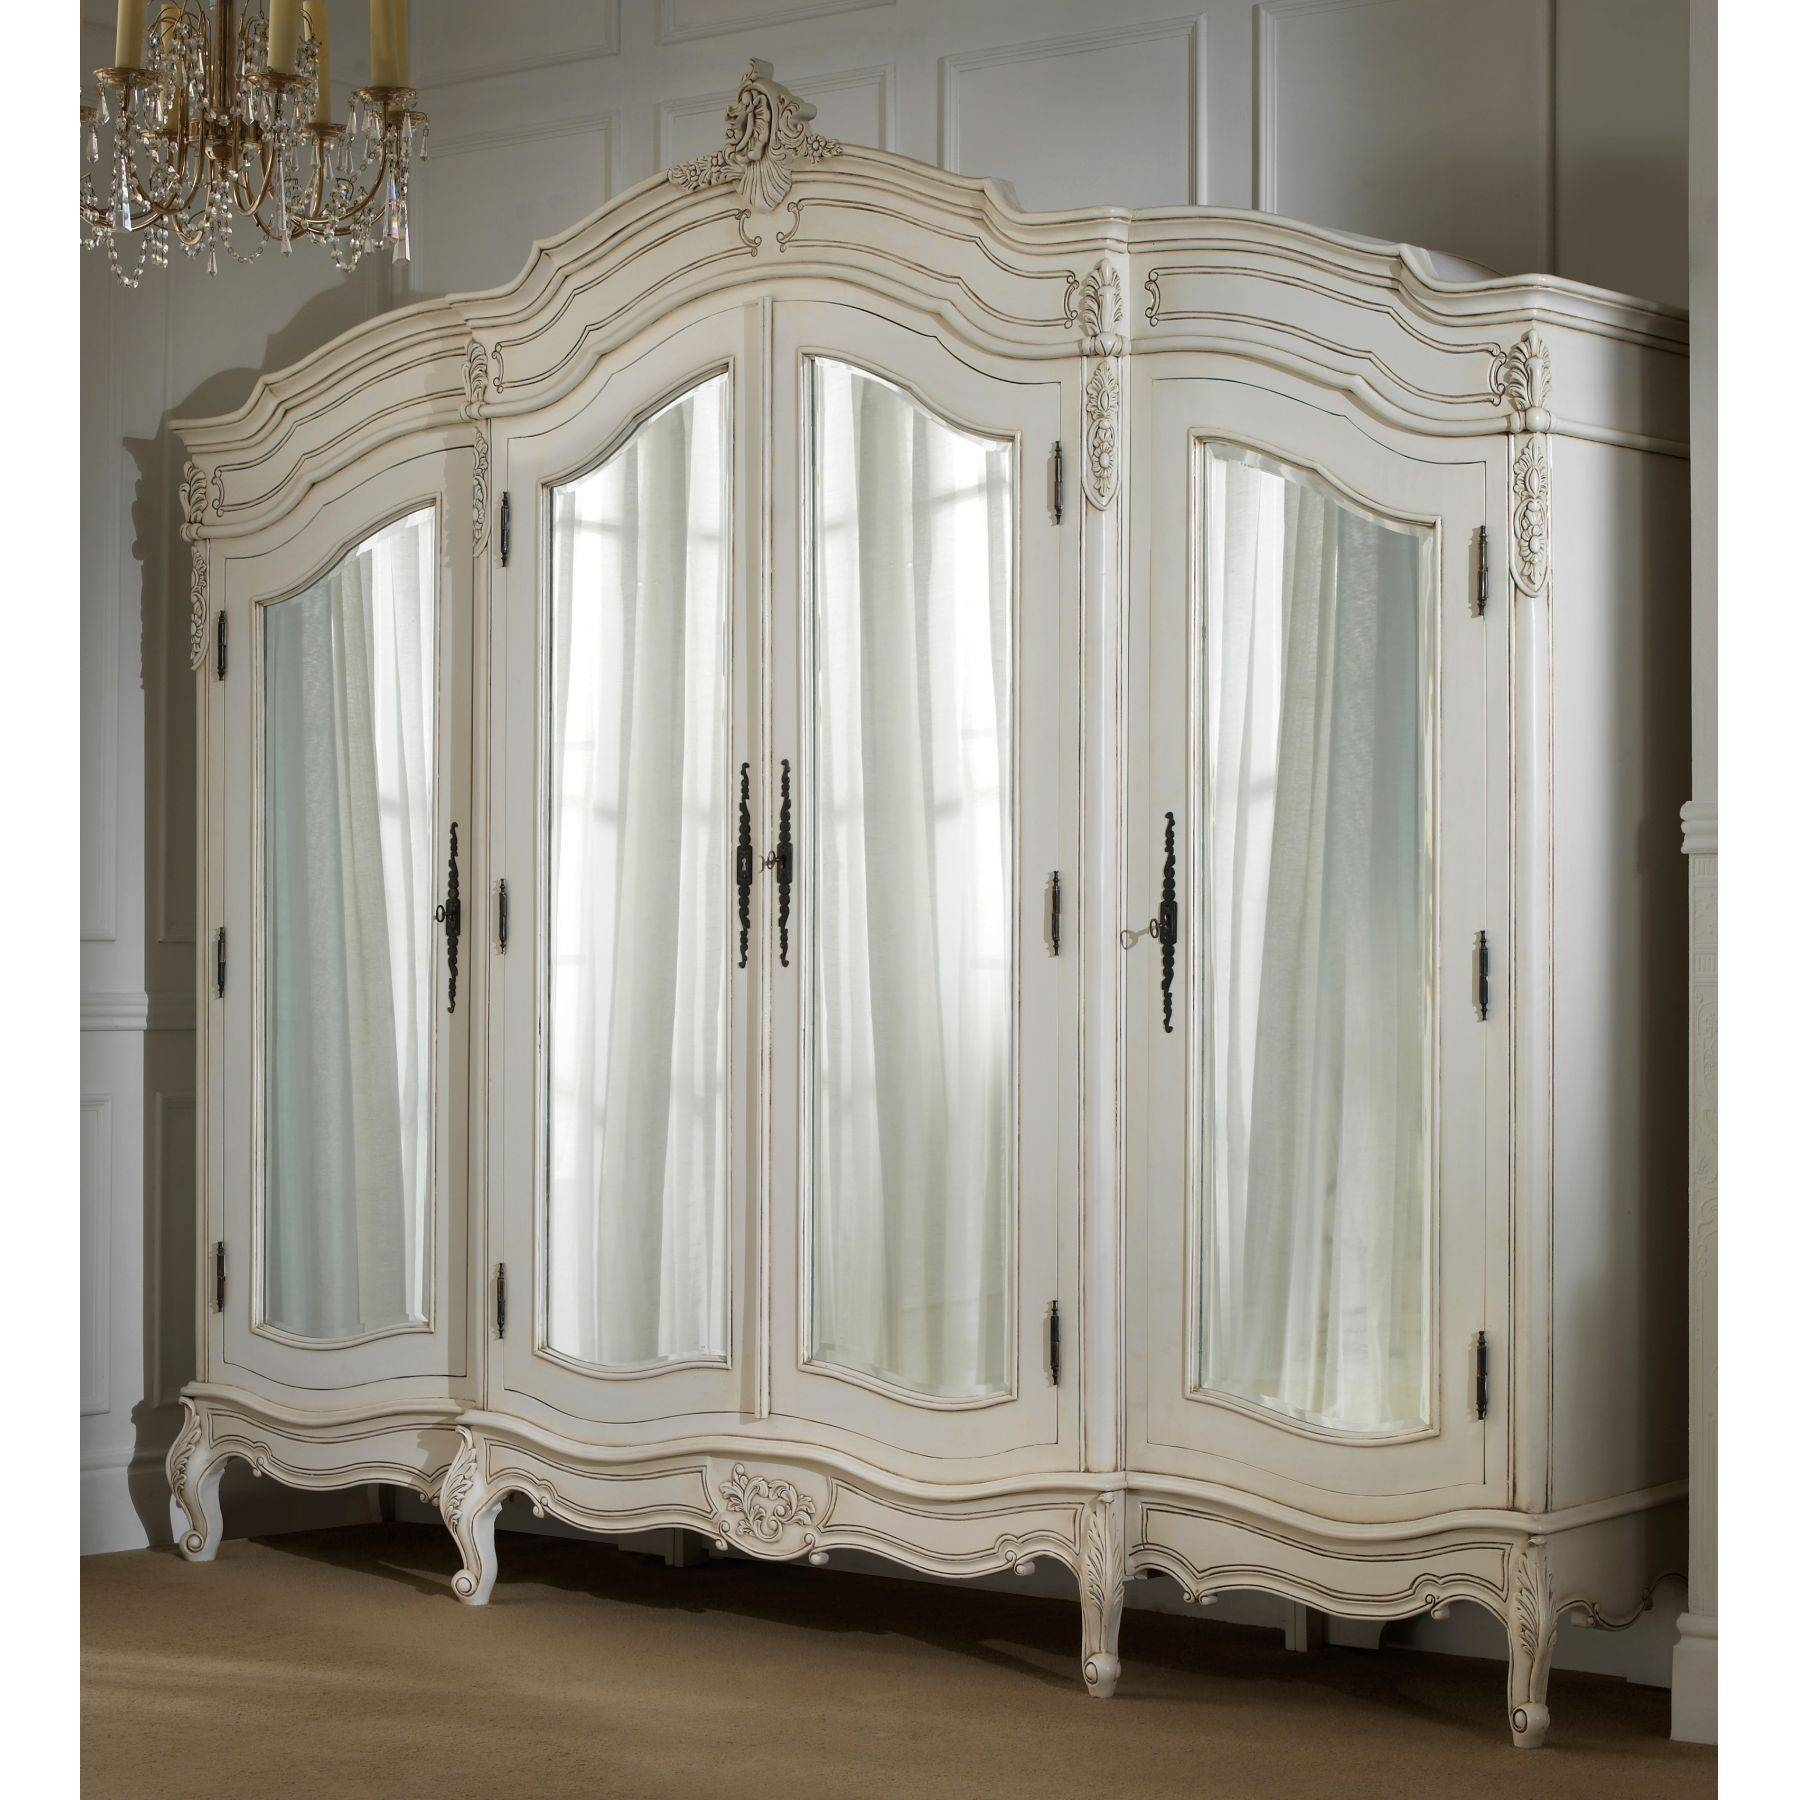 Rochelle 4 Door Antique French Wardrobe throughout Rococo Wardrobes (Image 10 of 15)